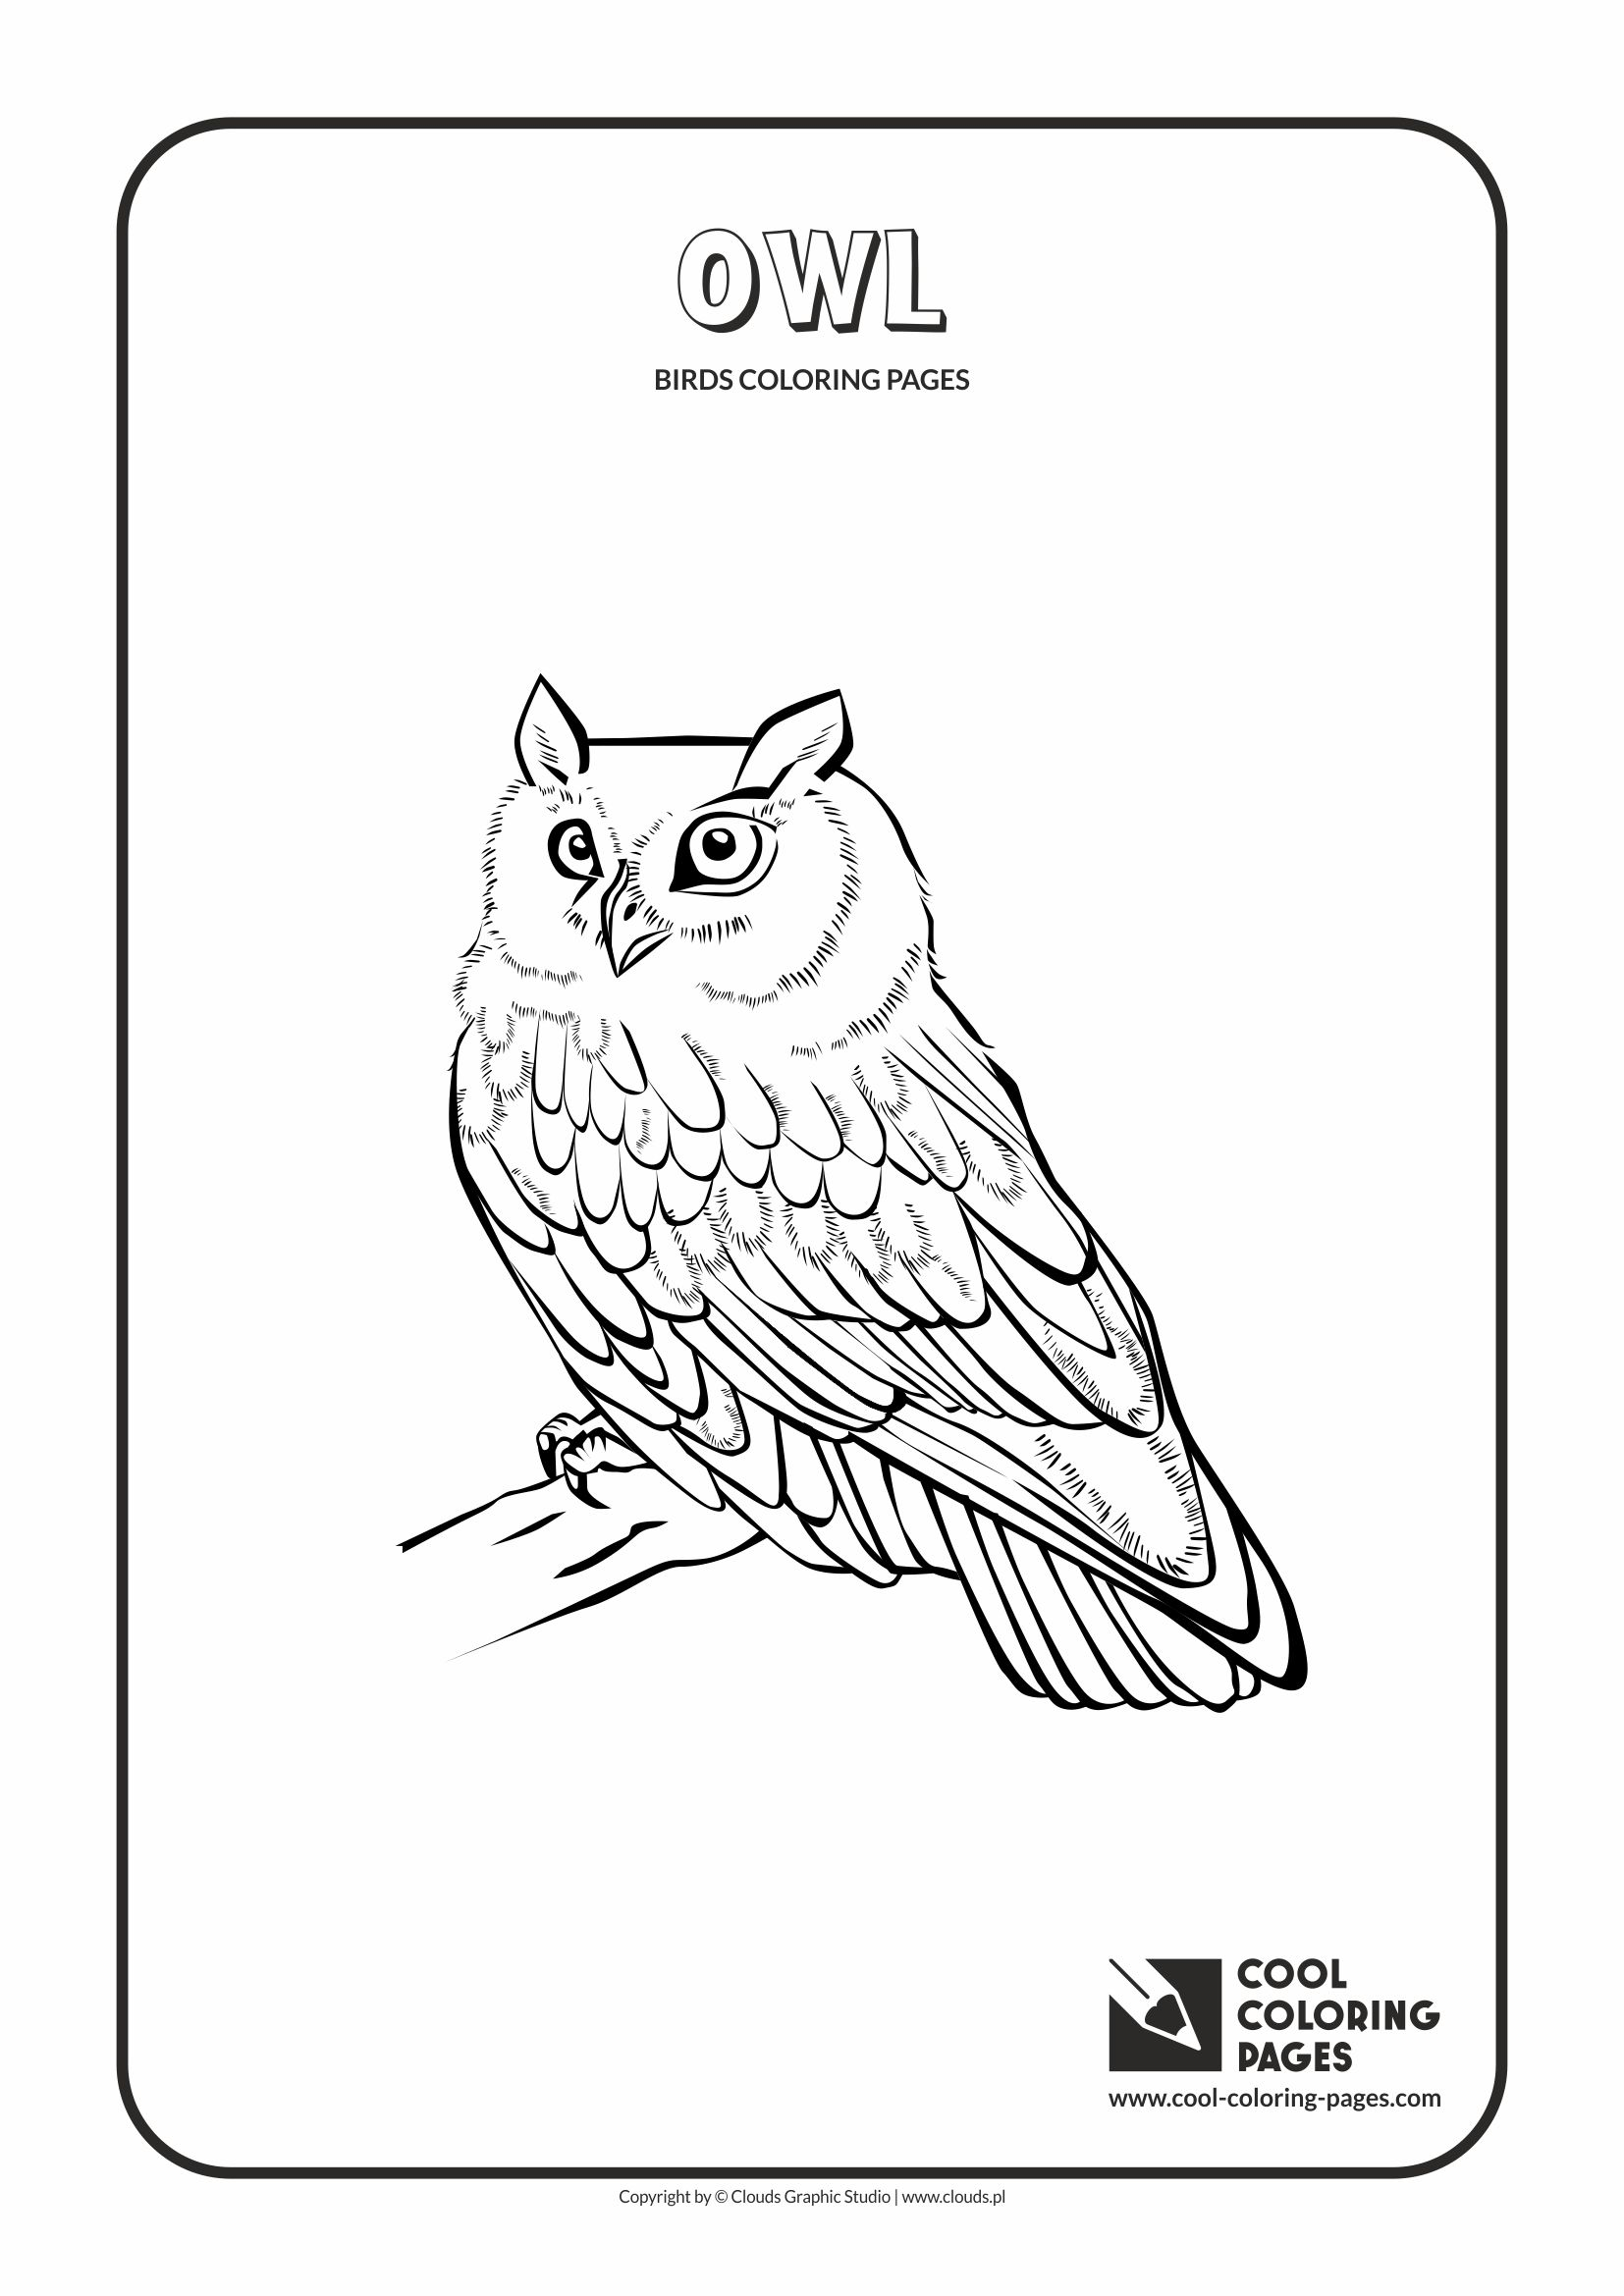 cool coloring pages birds coloring pages cool coloring pages free educational coloring pages. Black Bedroom Furniture Sets. Home Design Ideas